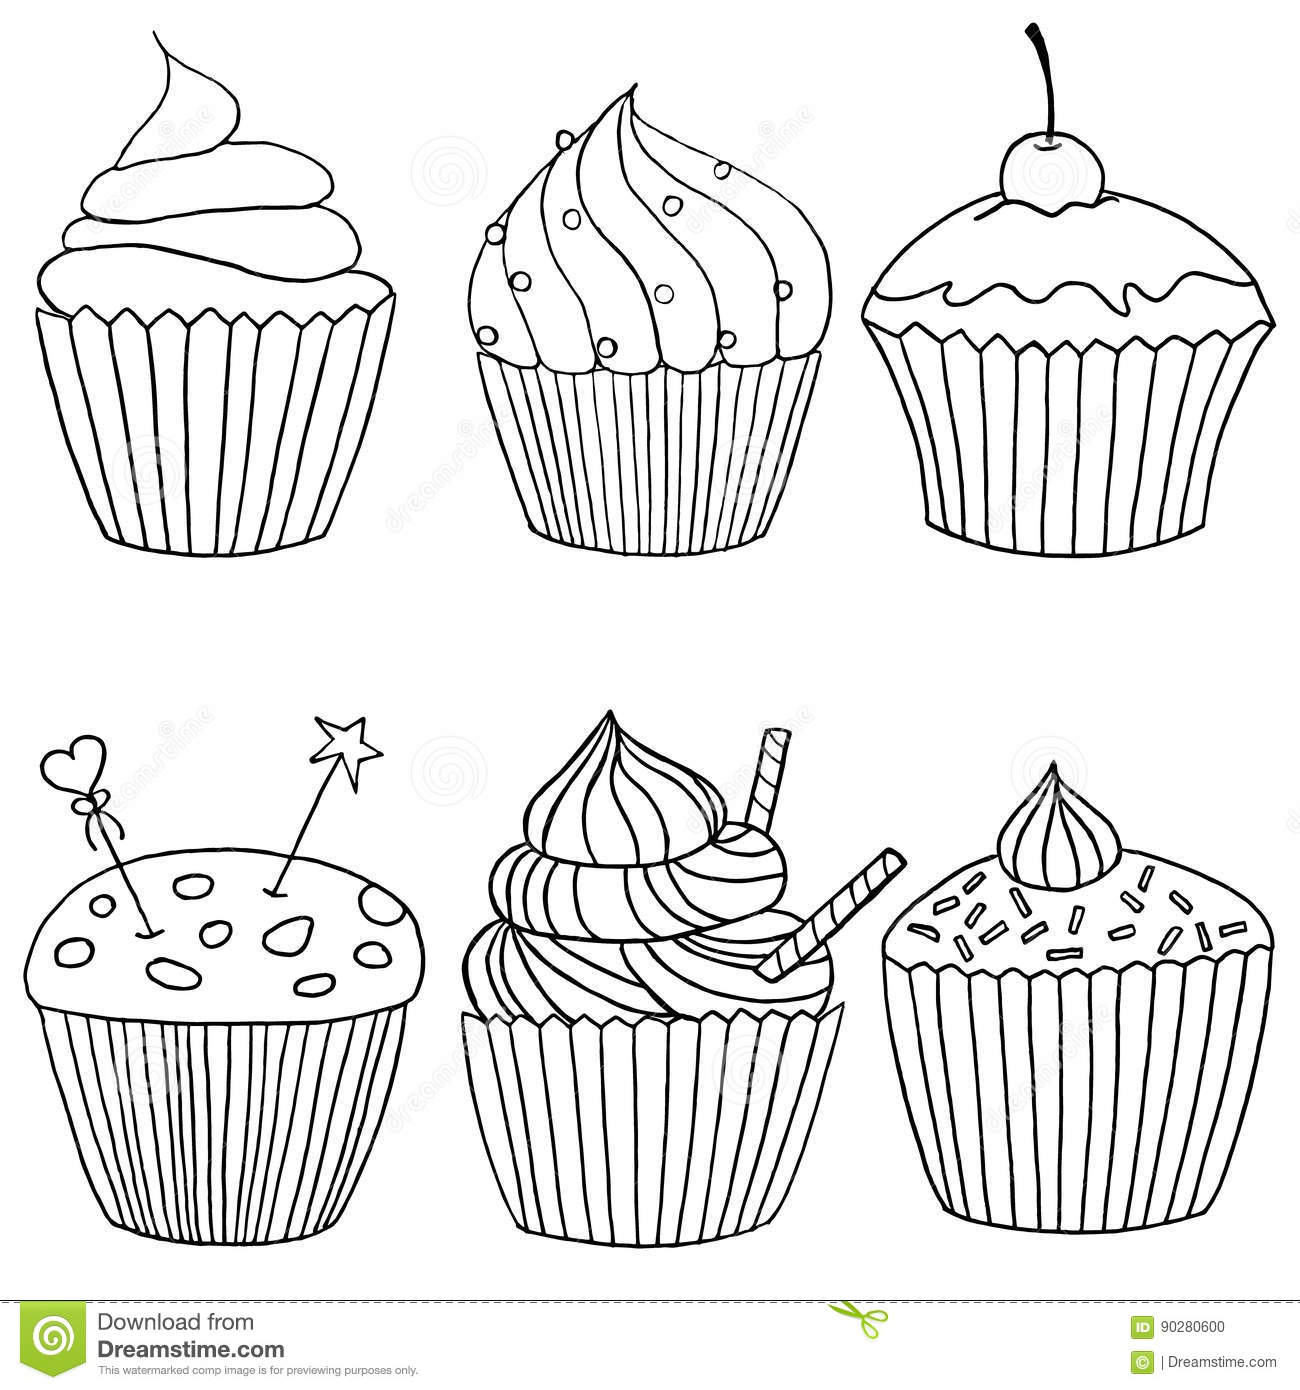 Six Images Of Cupcakes In Black And White Drawn By Hand